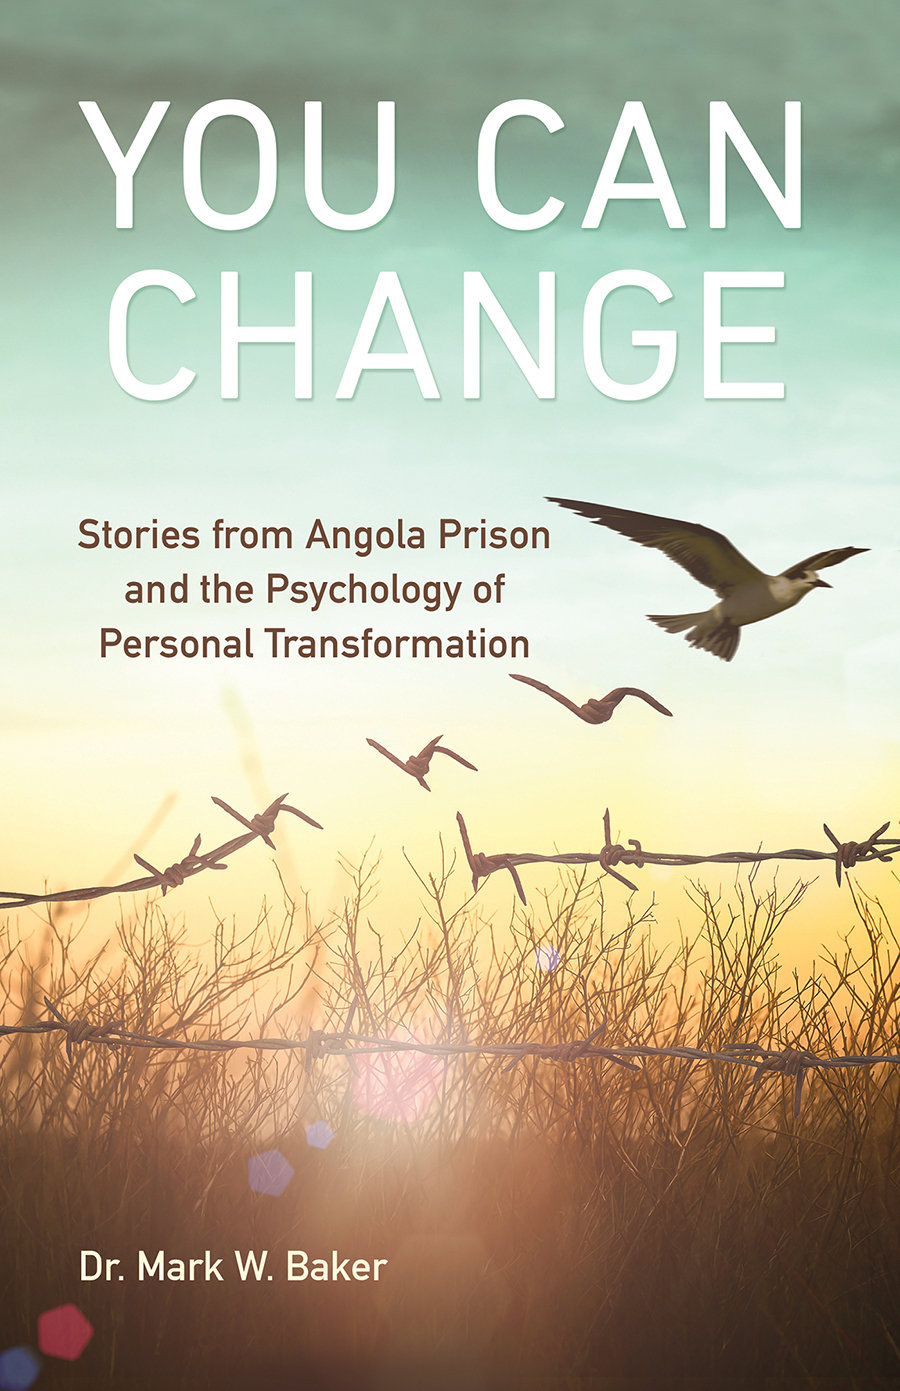 You Can Change: Stories from Angola Prison and the Psychology of Personal Transformation